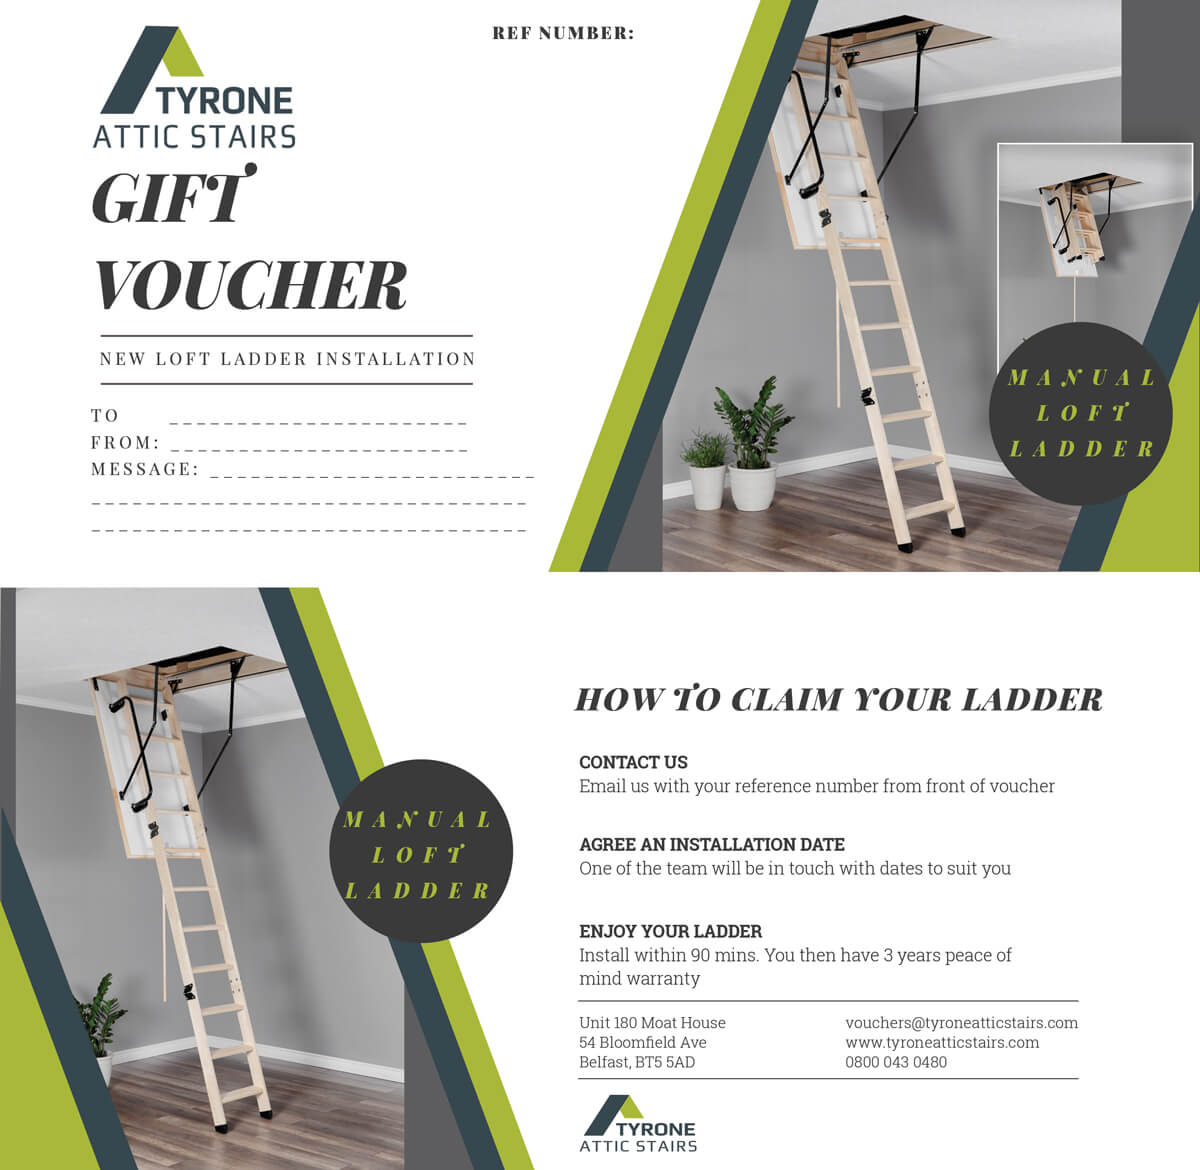 tas-loft-ladder-voucher-christmas